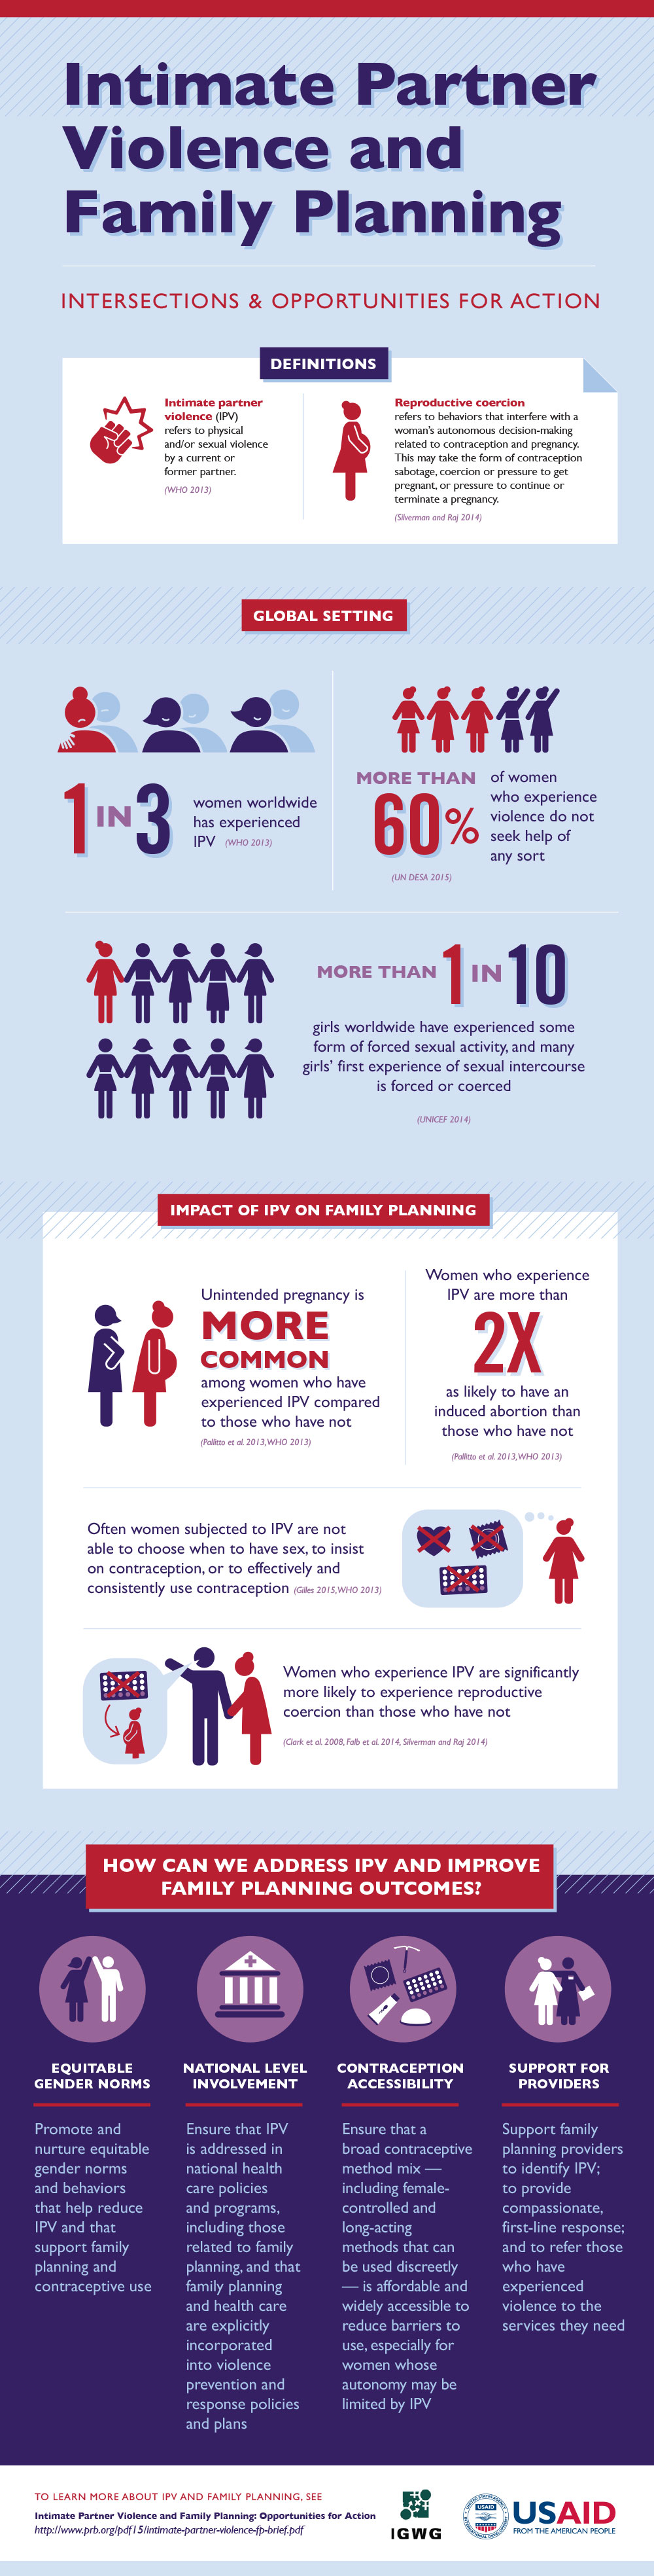 Infographic talking about intimate Partner violence and family planning. Please see PDF below for full description